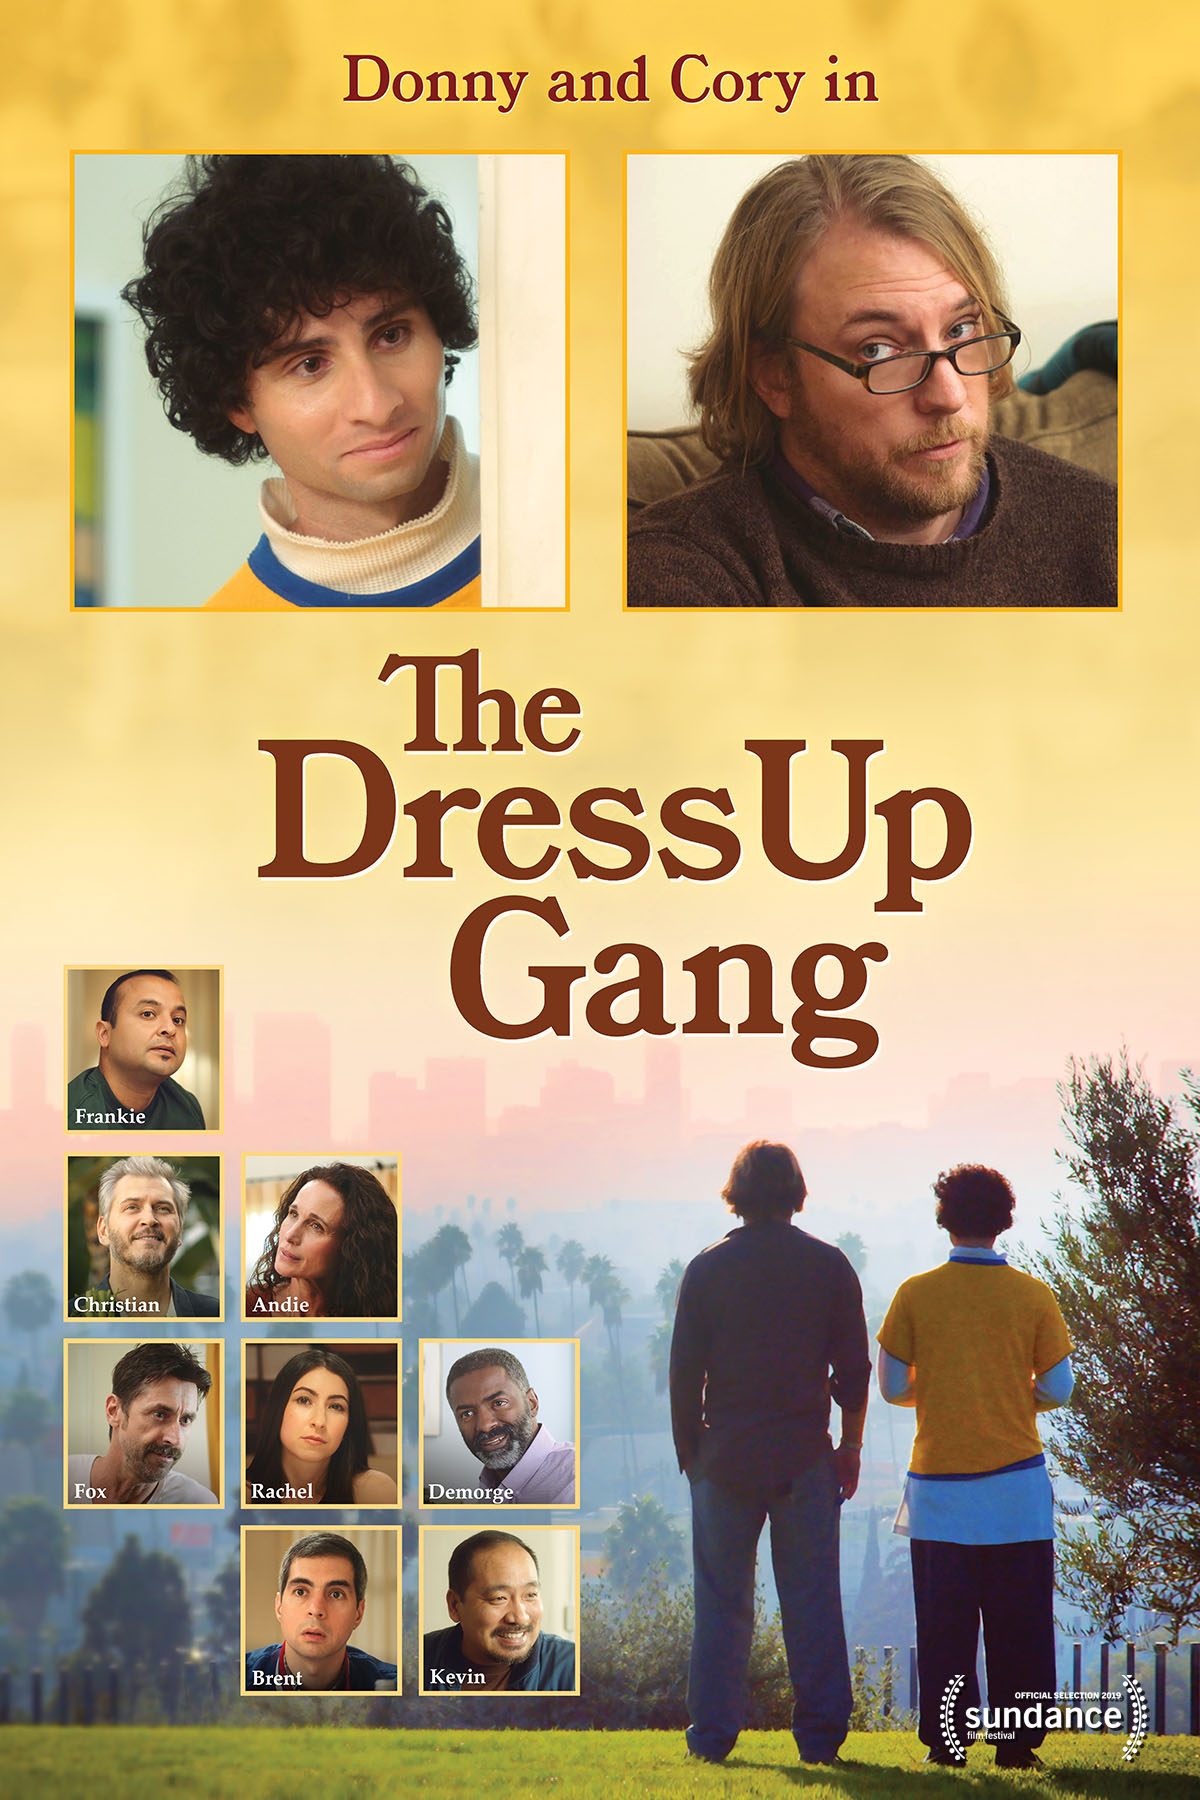 The Dress Up Gang - Season 1 Episode 10 - The Club/Cory from Beyond